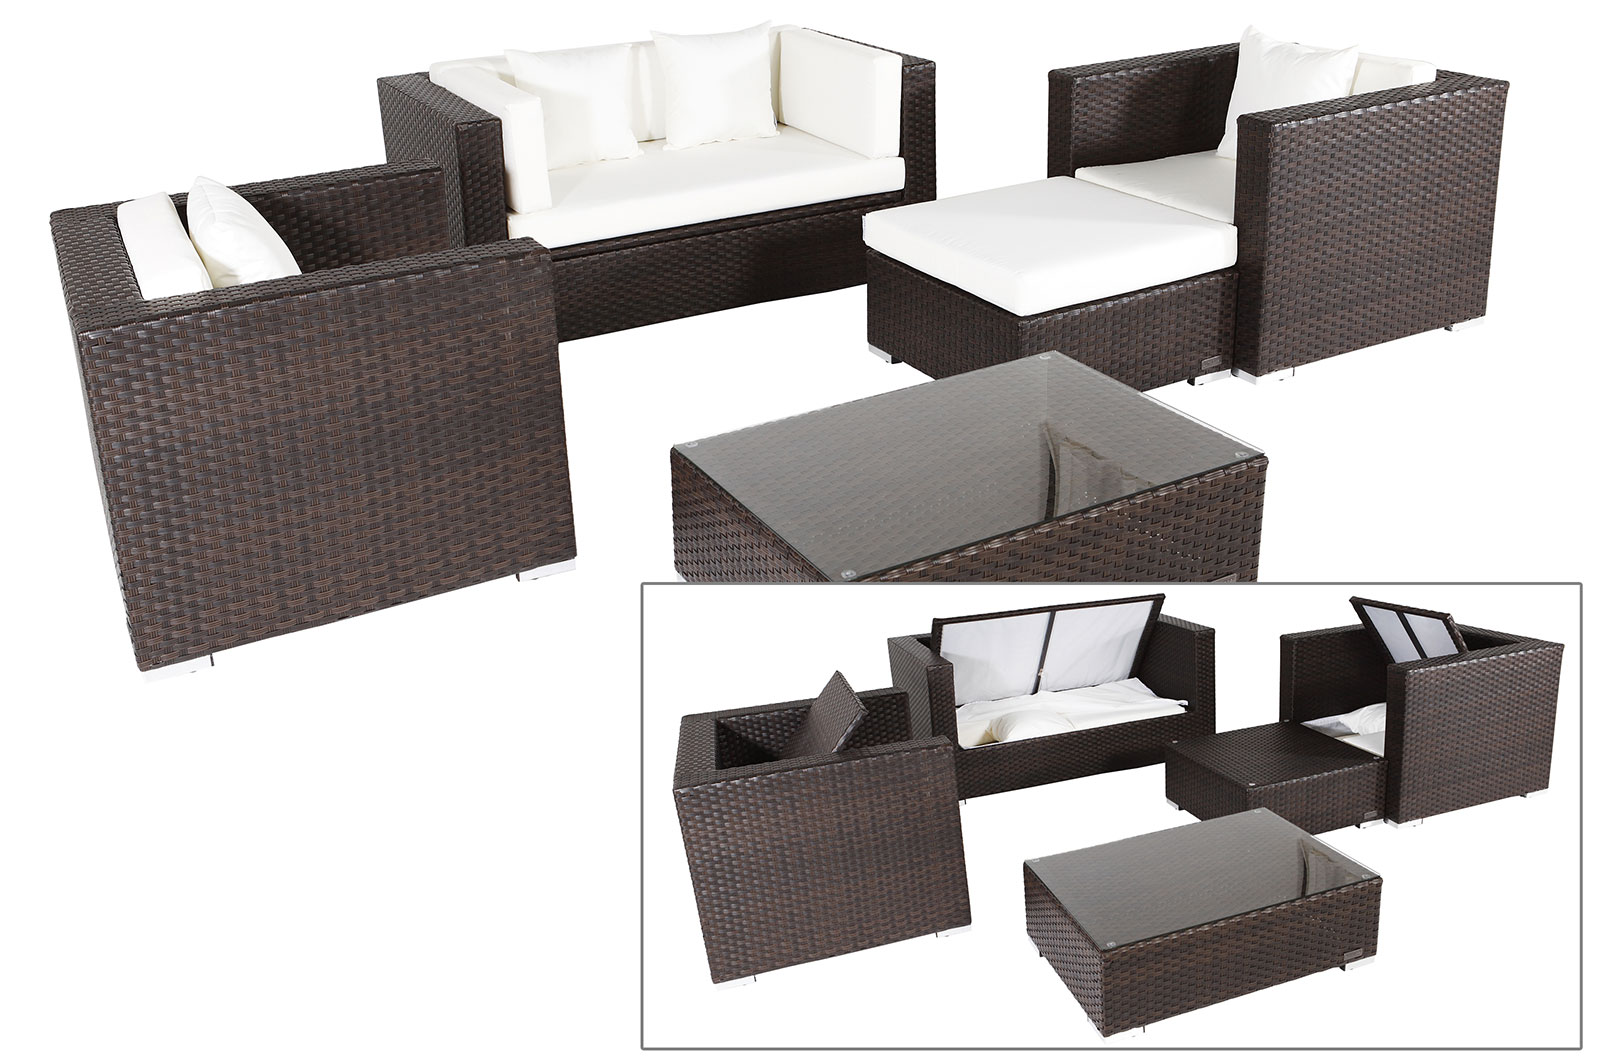 beautiful lounge gartenmoebel polyrattan ideas globexusa. Black Bedroom Furniture Sets. Home Design Ideas